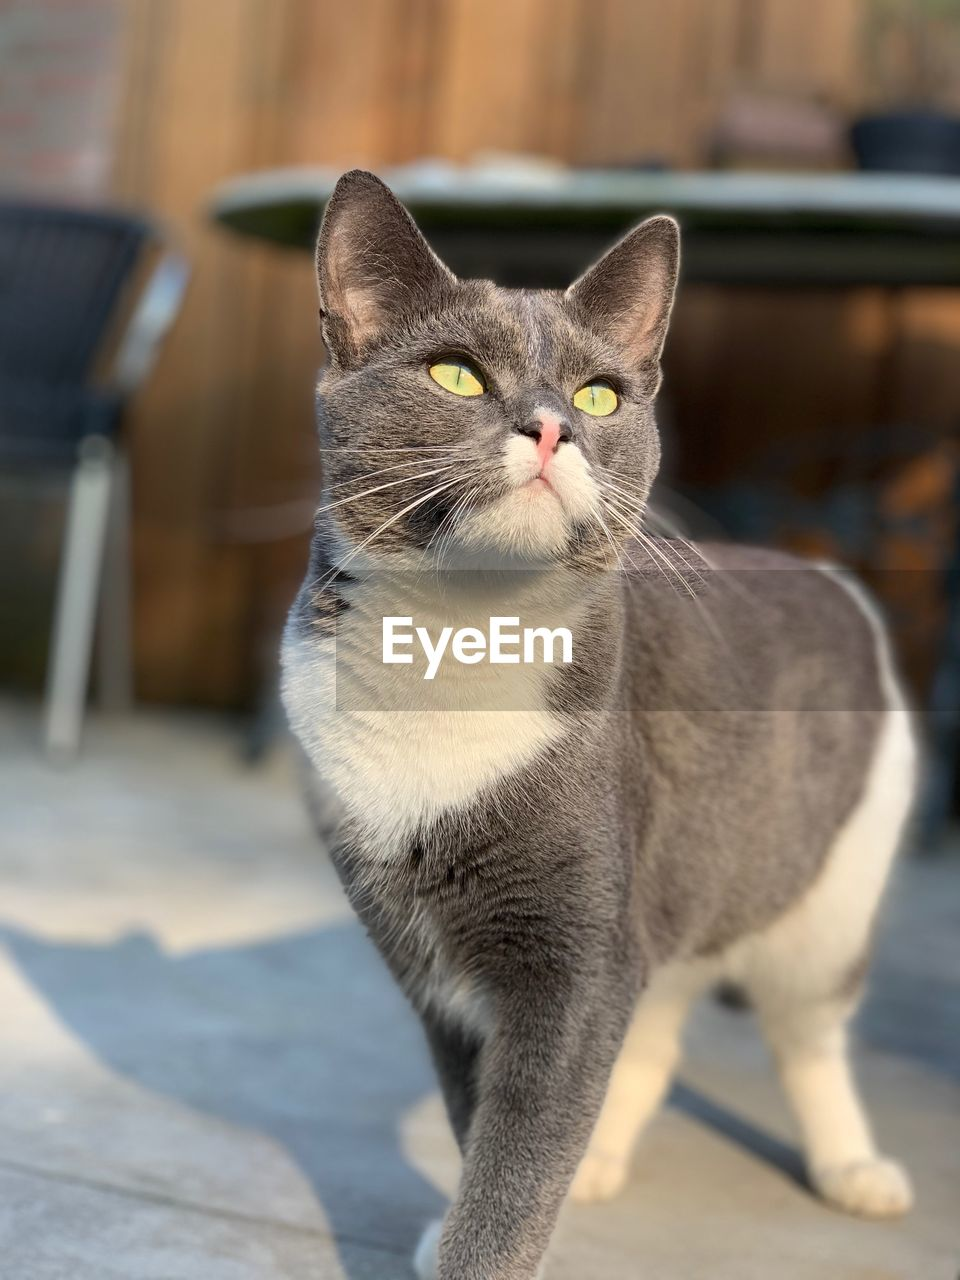 pets, domestic, domestic animals, mammal, domestic cat, cat, focus on foreground, one animal, feline, vertebrate, no people, portrait, close-up, looking at camera, whisker, indoors, day, yellow eyes